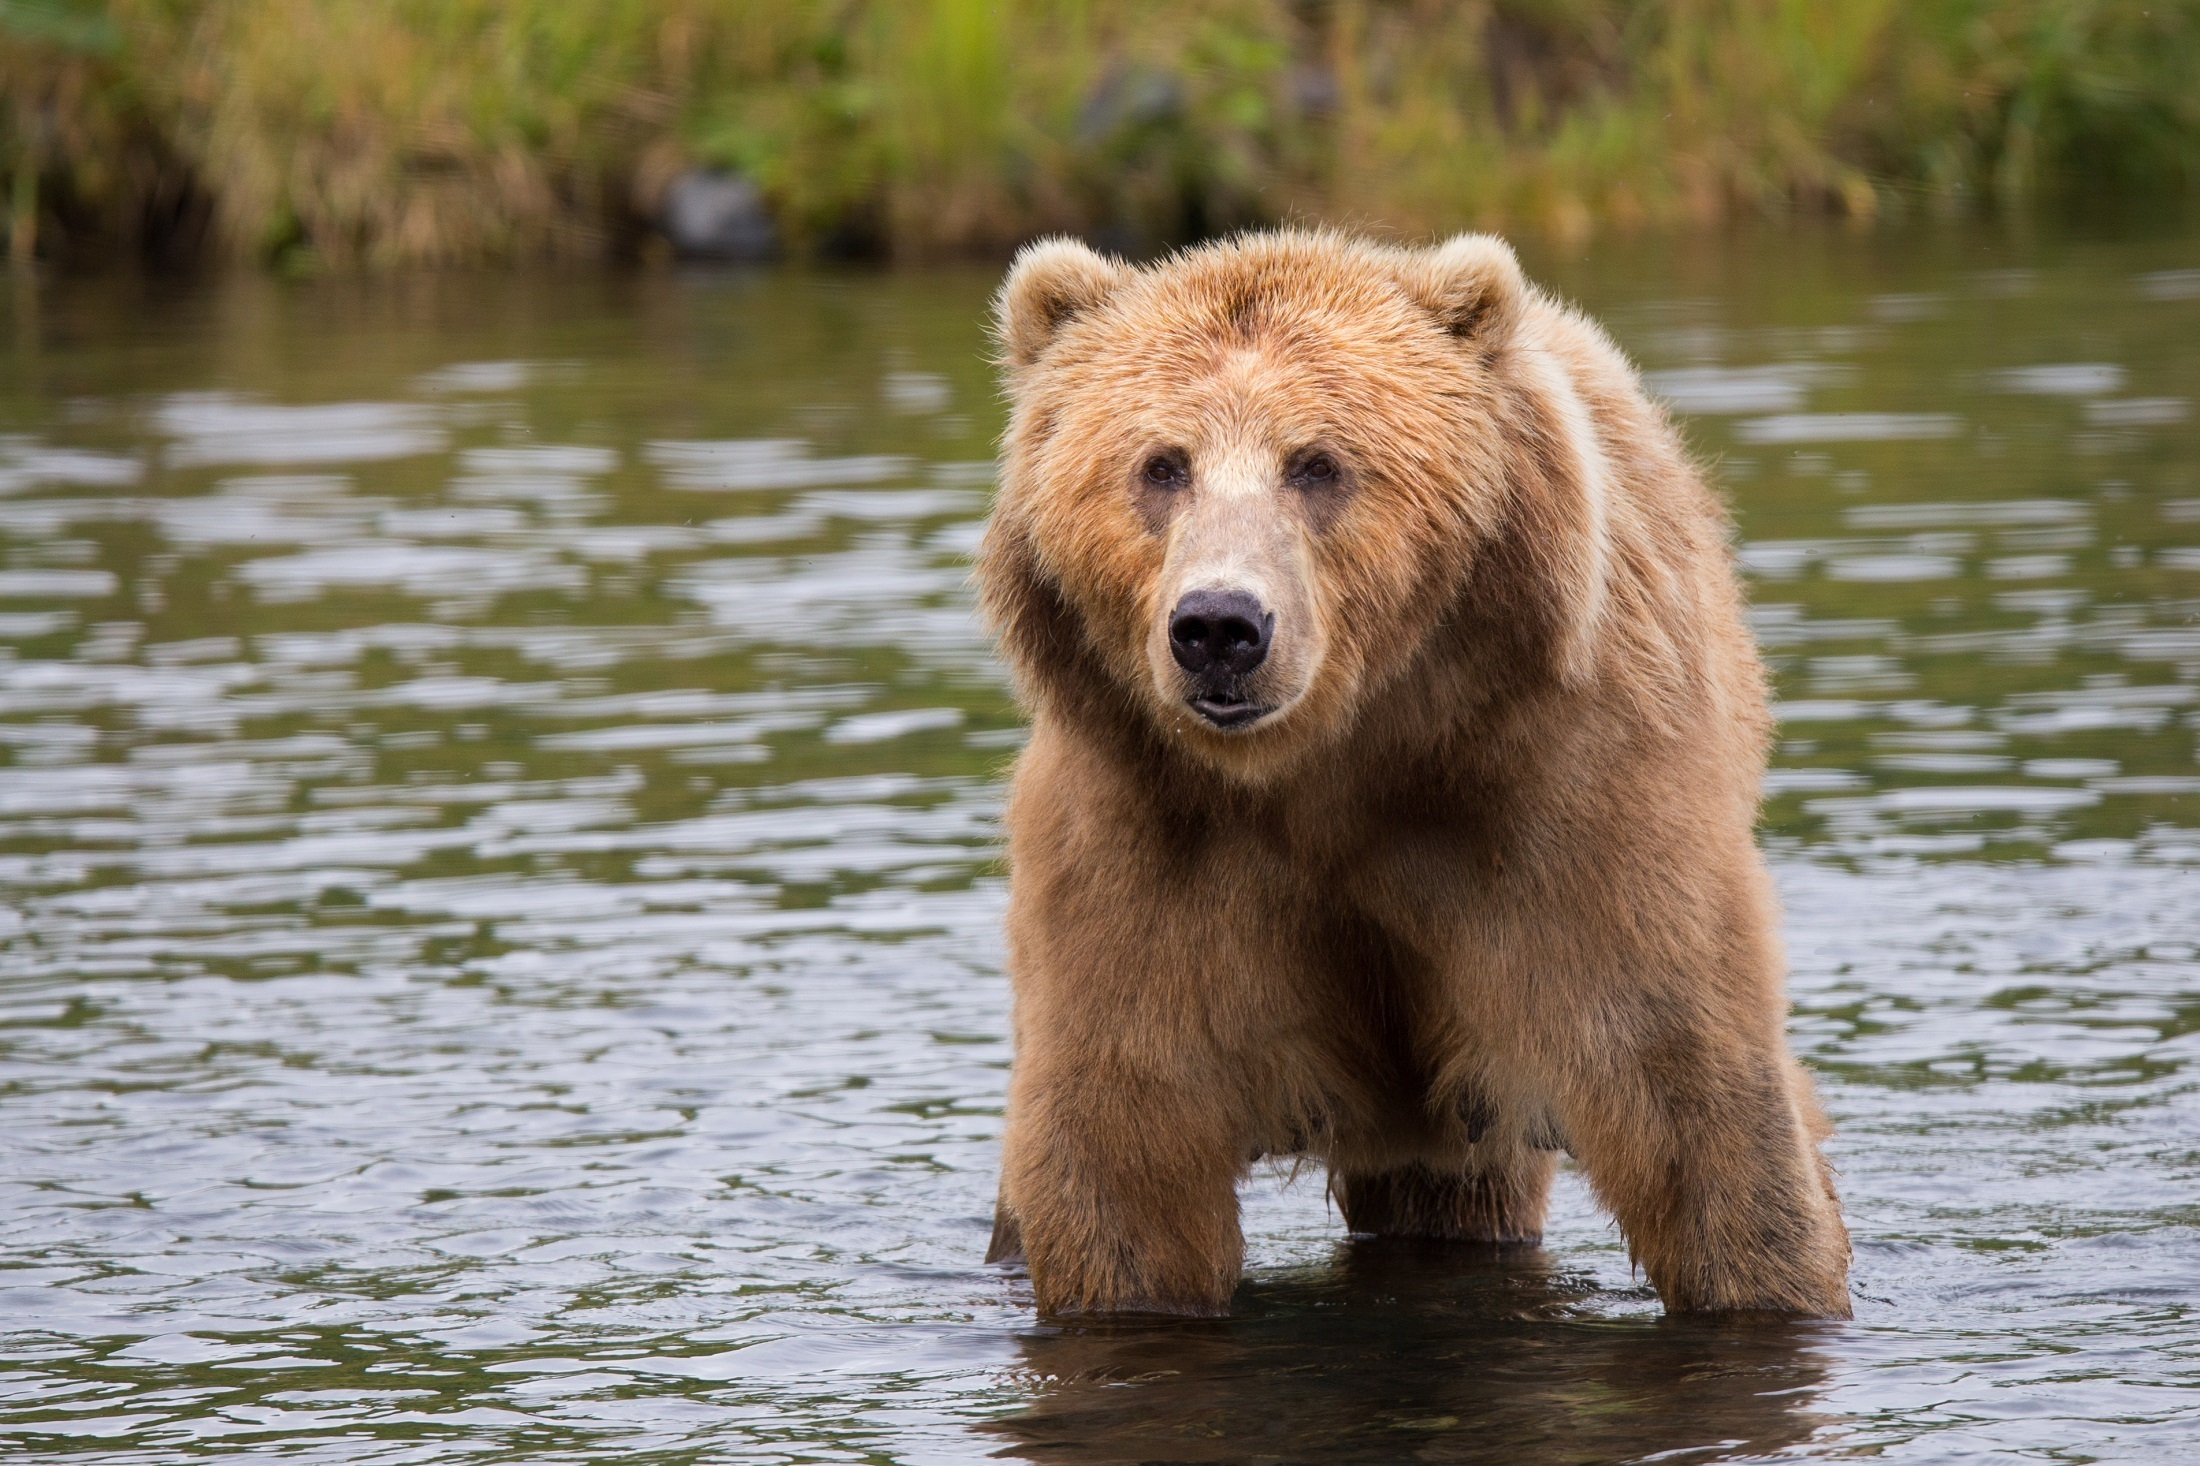 kodiak-brown-bear-adult-portrait-wildlife-158109